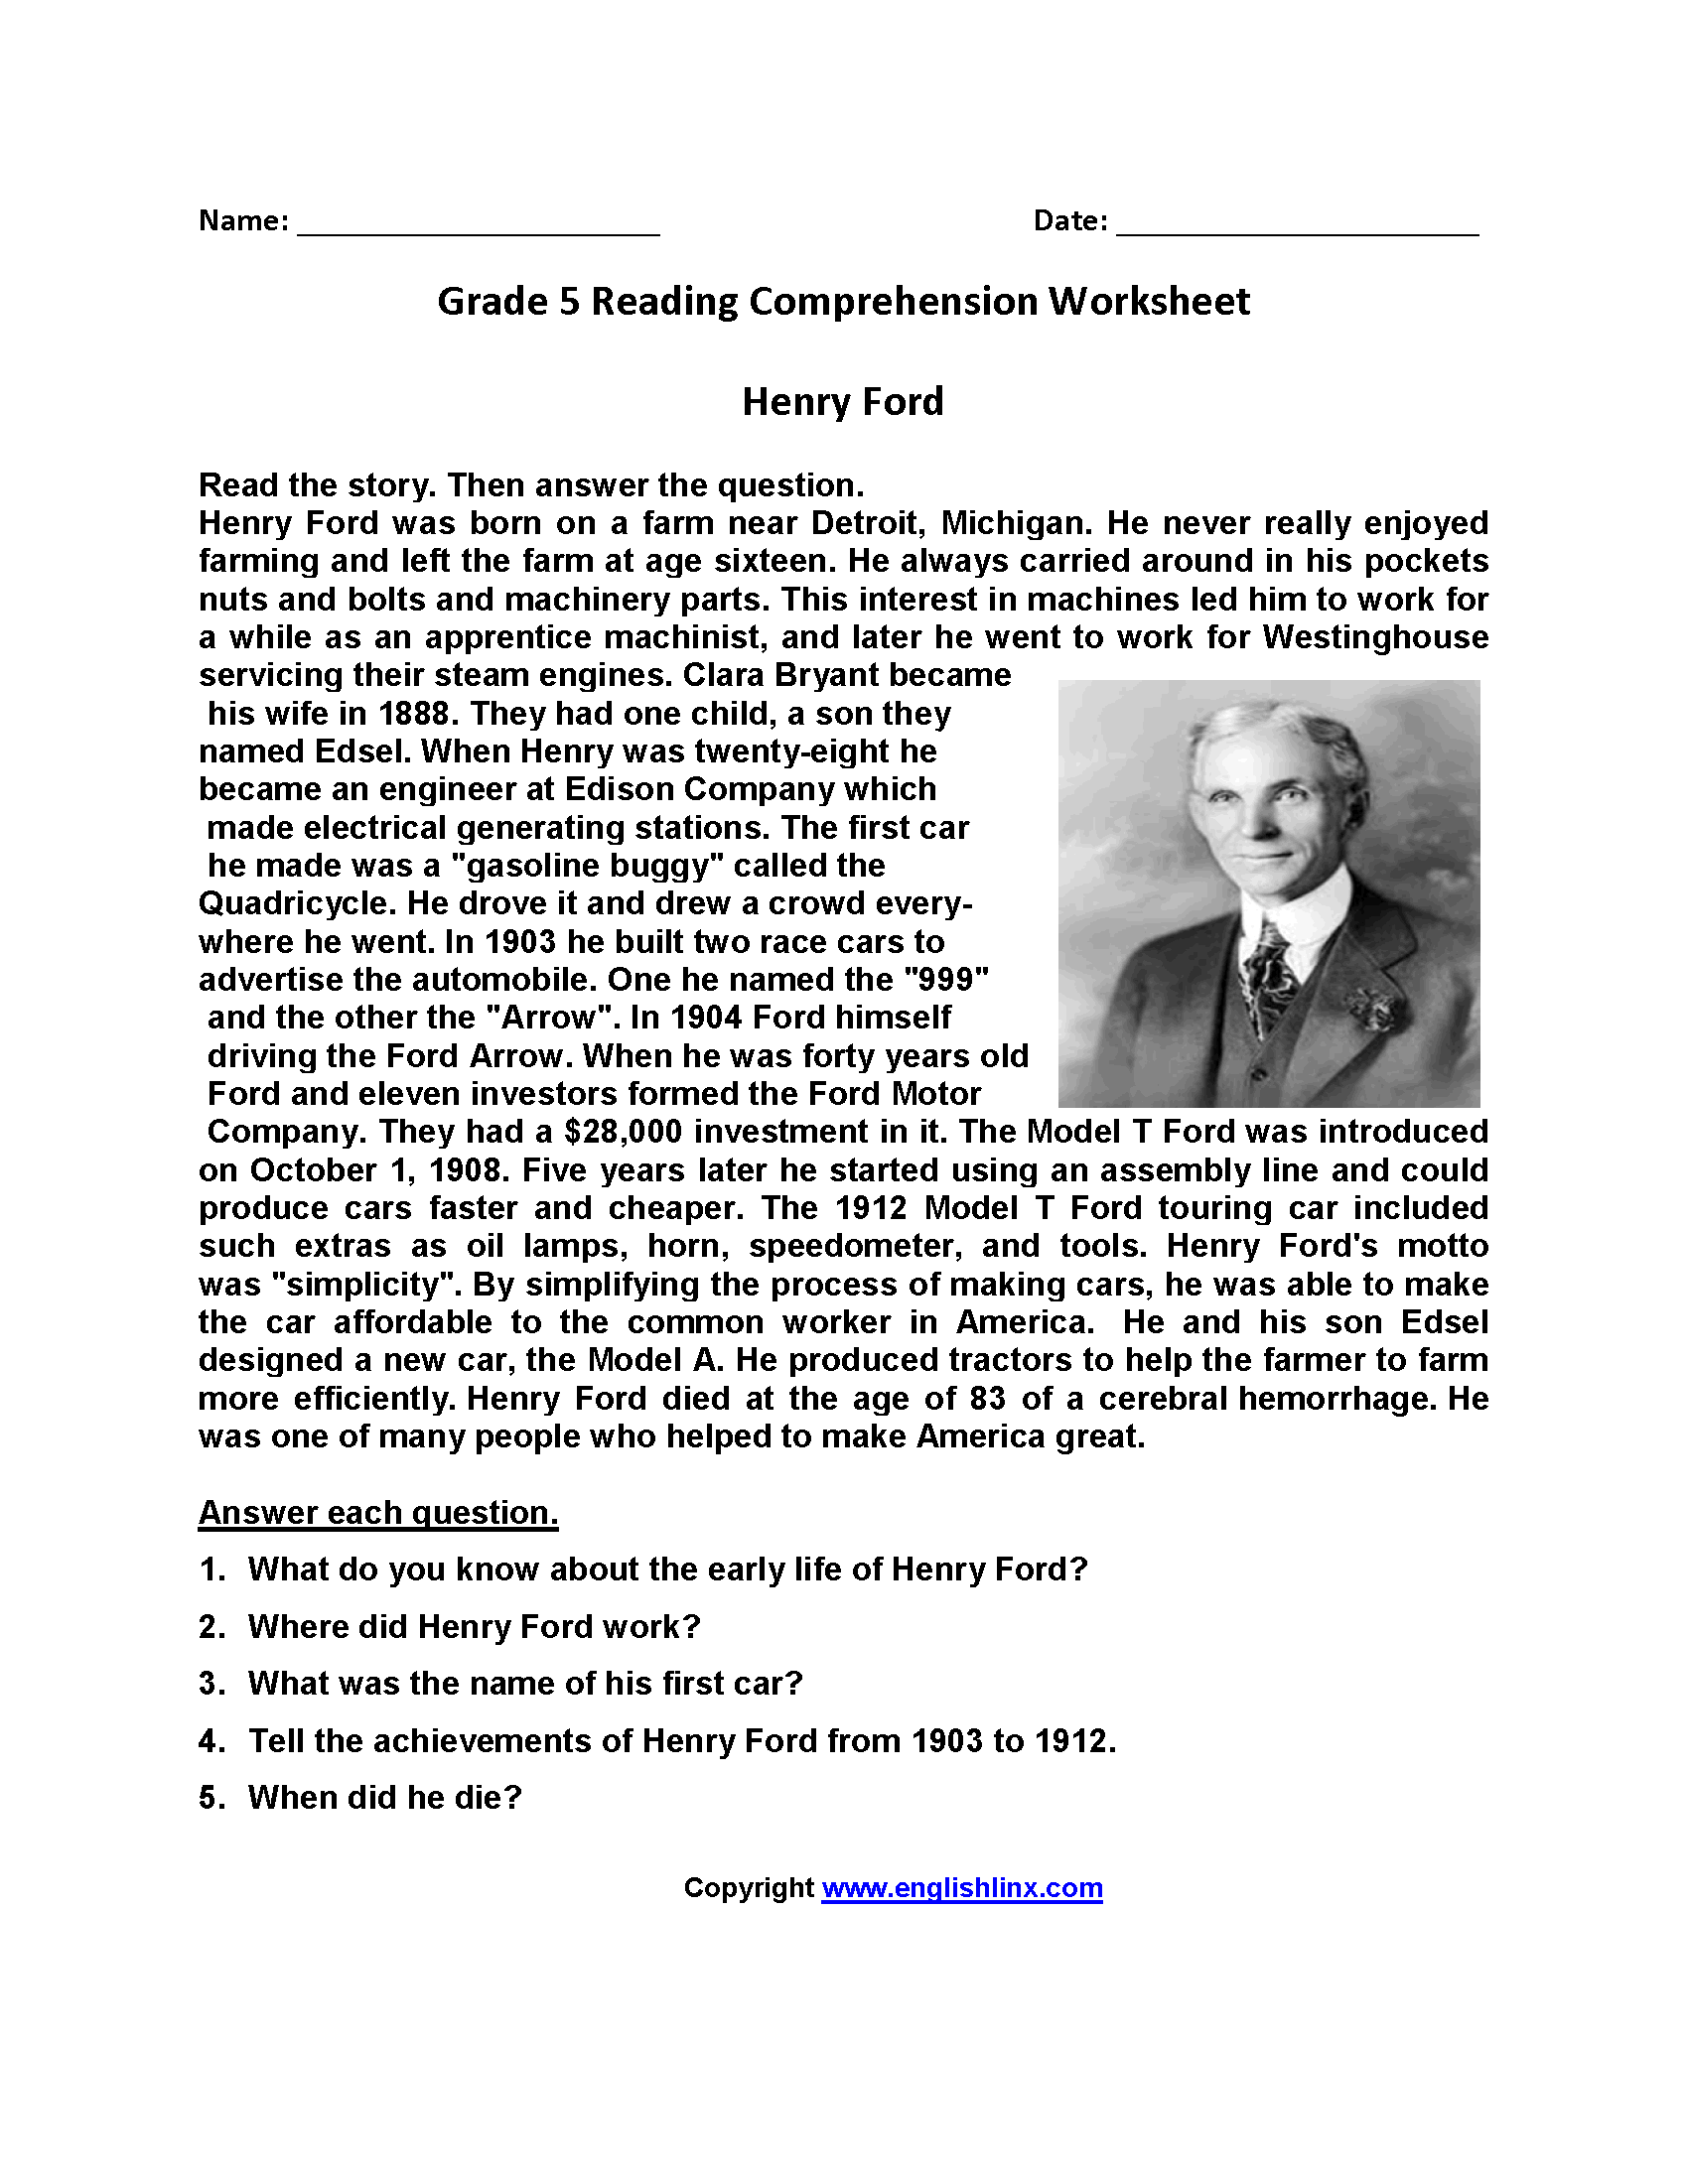 Worksheet Reading Comprehension 5th Grade